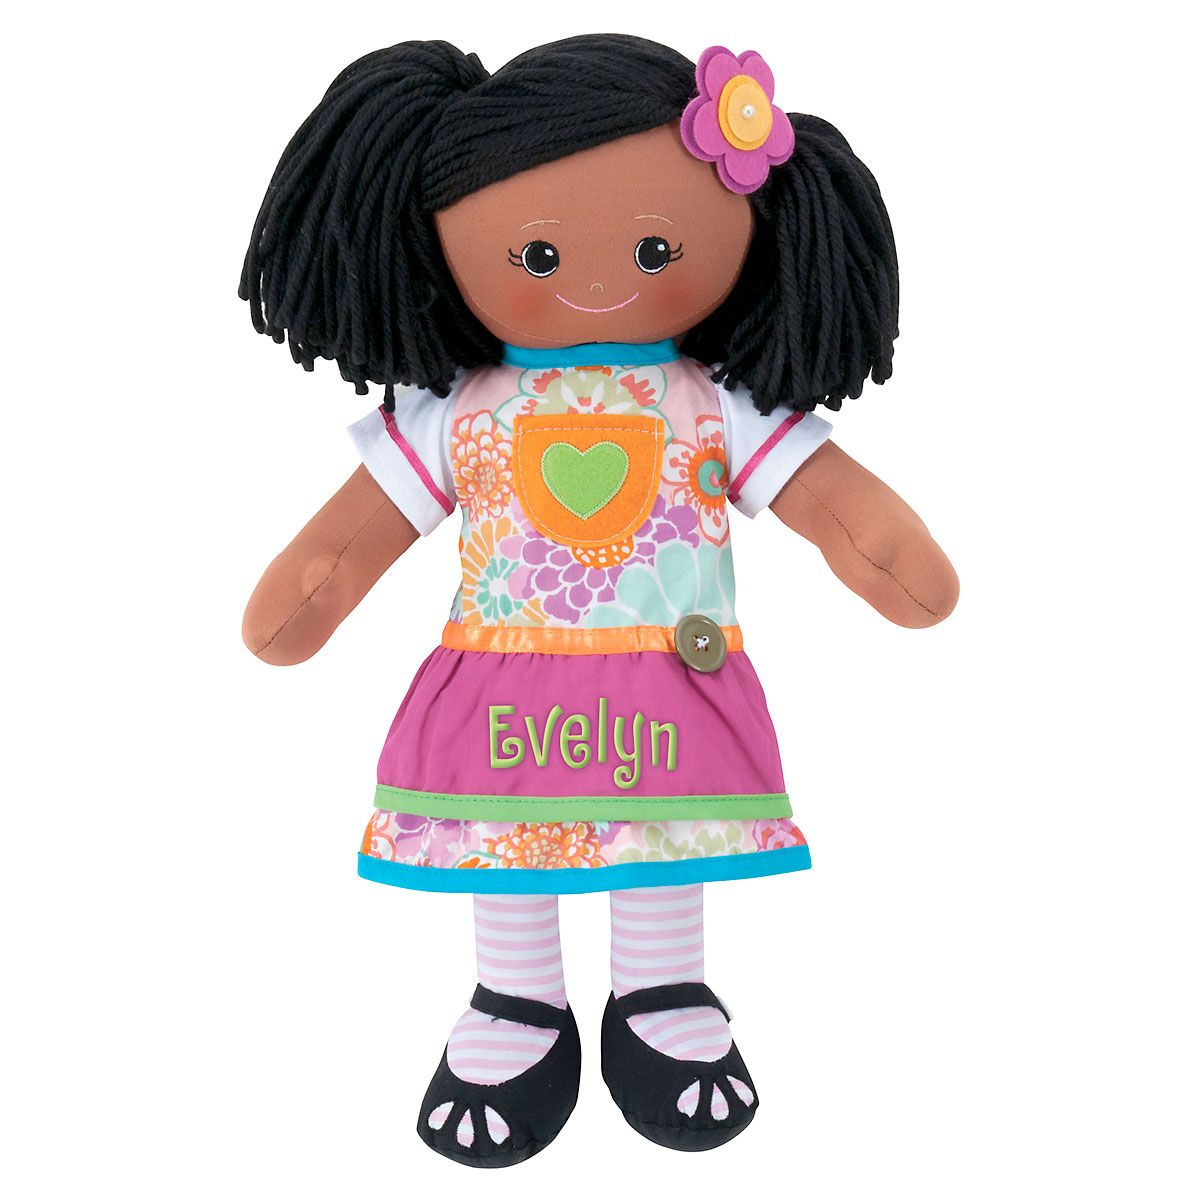 Personalized African American Rag Doll with Apron Dress